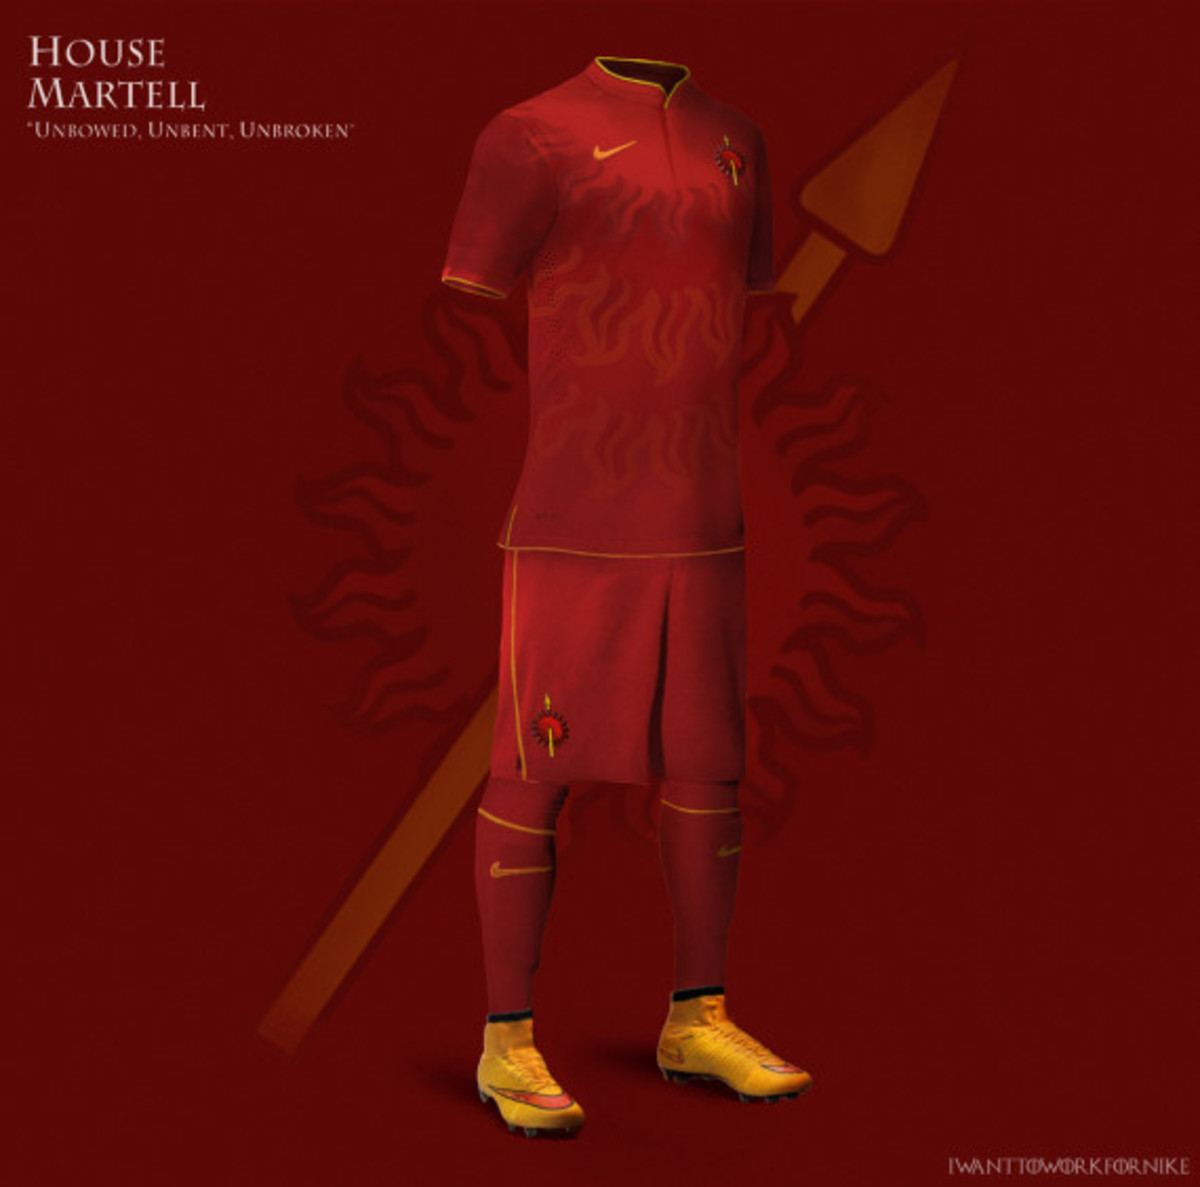 Game of Thrones-inspired Nike Soccer Kit Concepts by Nerea Palacios - 11